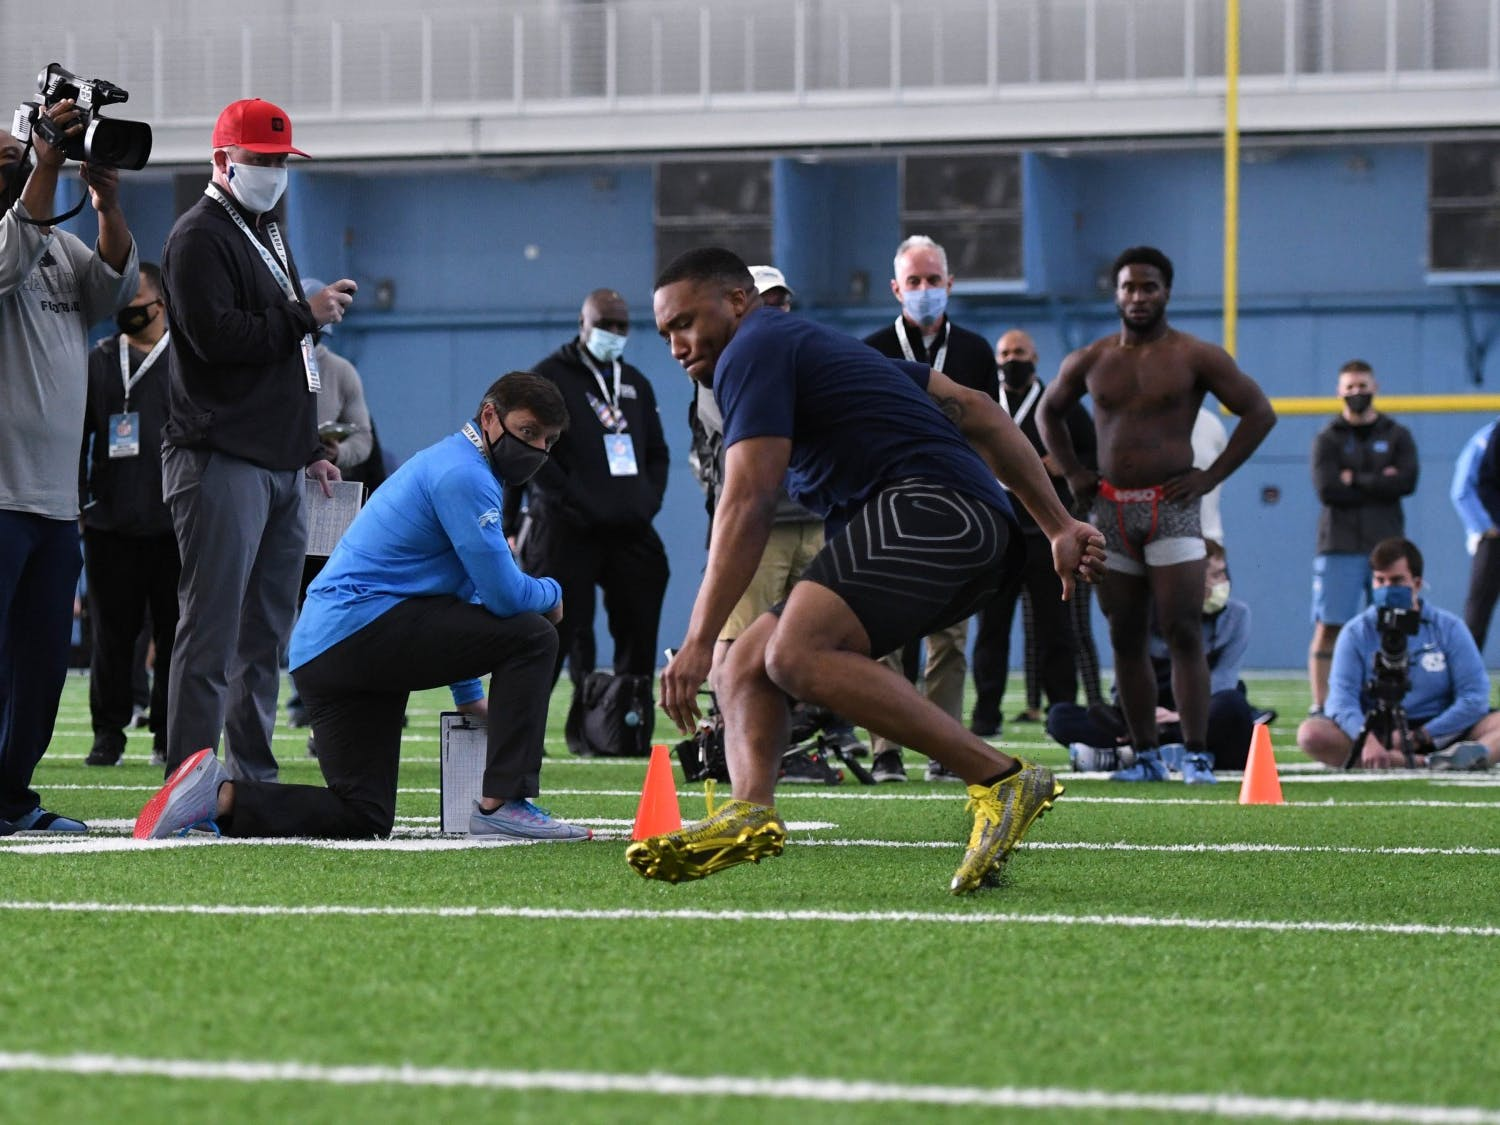 Jordan Brown prepares to drill during University of North Carolina Football Pro Day at Indoor Practice Facility on Monday, March 29, 2021. Photo courtesy of Jeff Camarati.